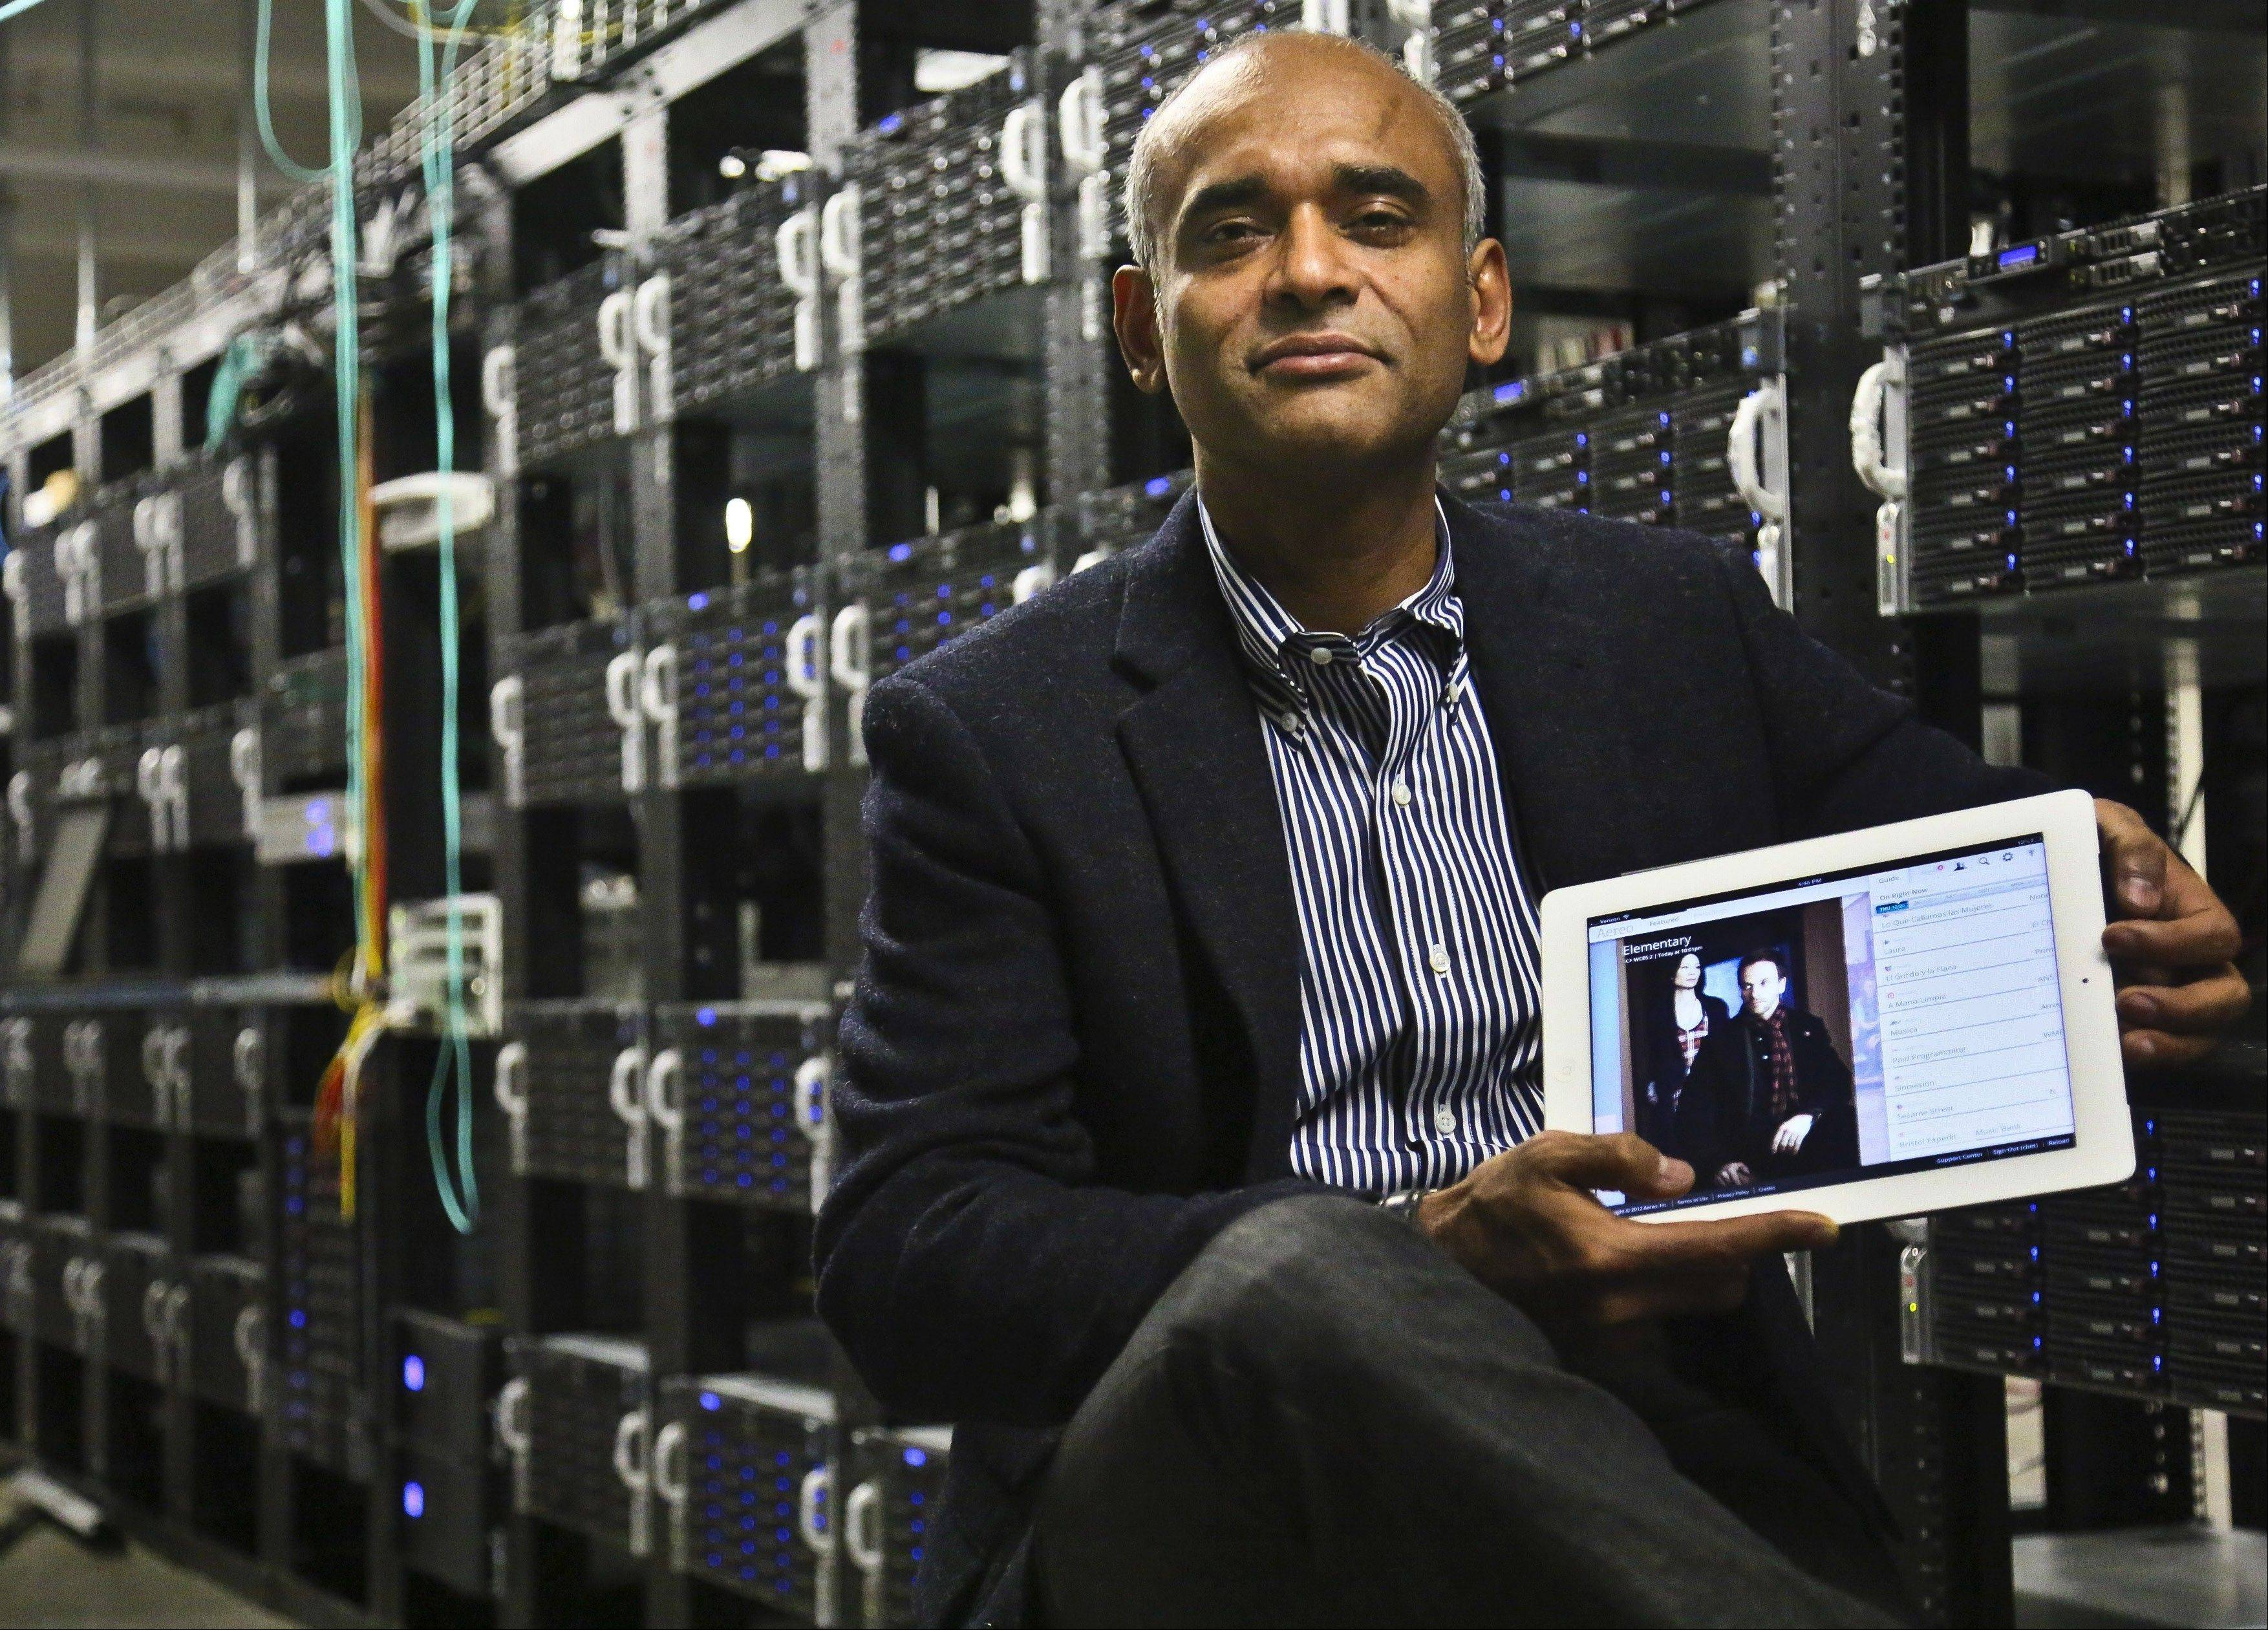 Chet Kanojia, founder and CEO of Aereo, Inc., shows a tablet displaying his company's technology, in New York. Aereo is one of several startups created to deliver traditional media over the Internet without licensing agreements. Past efforts have typically been rejected by courts as copyright violations. In Aereo�s case, the judge accepted the company�s legal reasoning, but with reluctance.